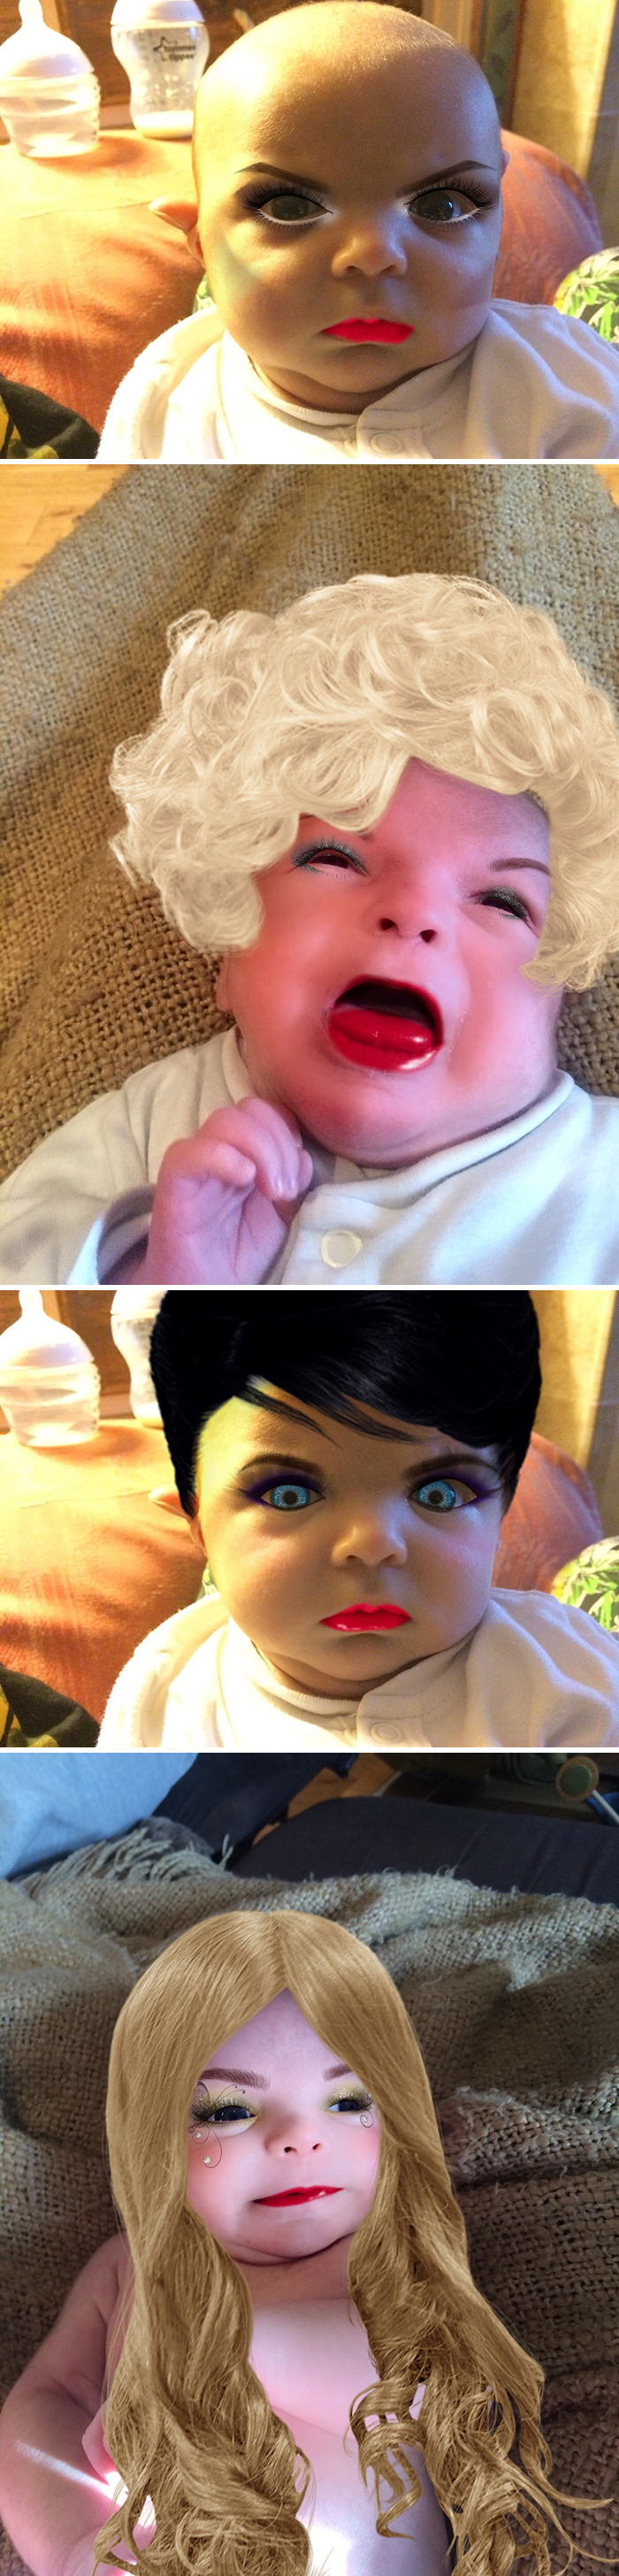 I Used A Make Up App On My 7 Week-Old-Son